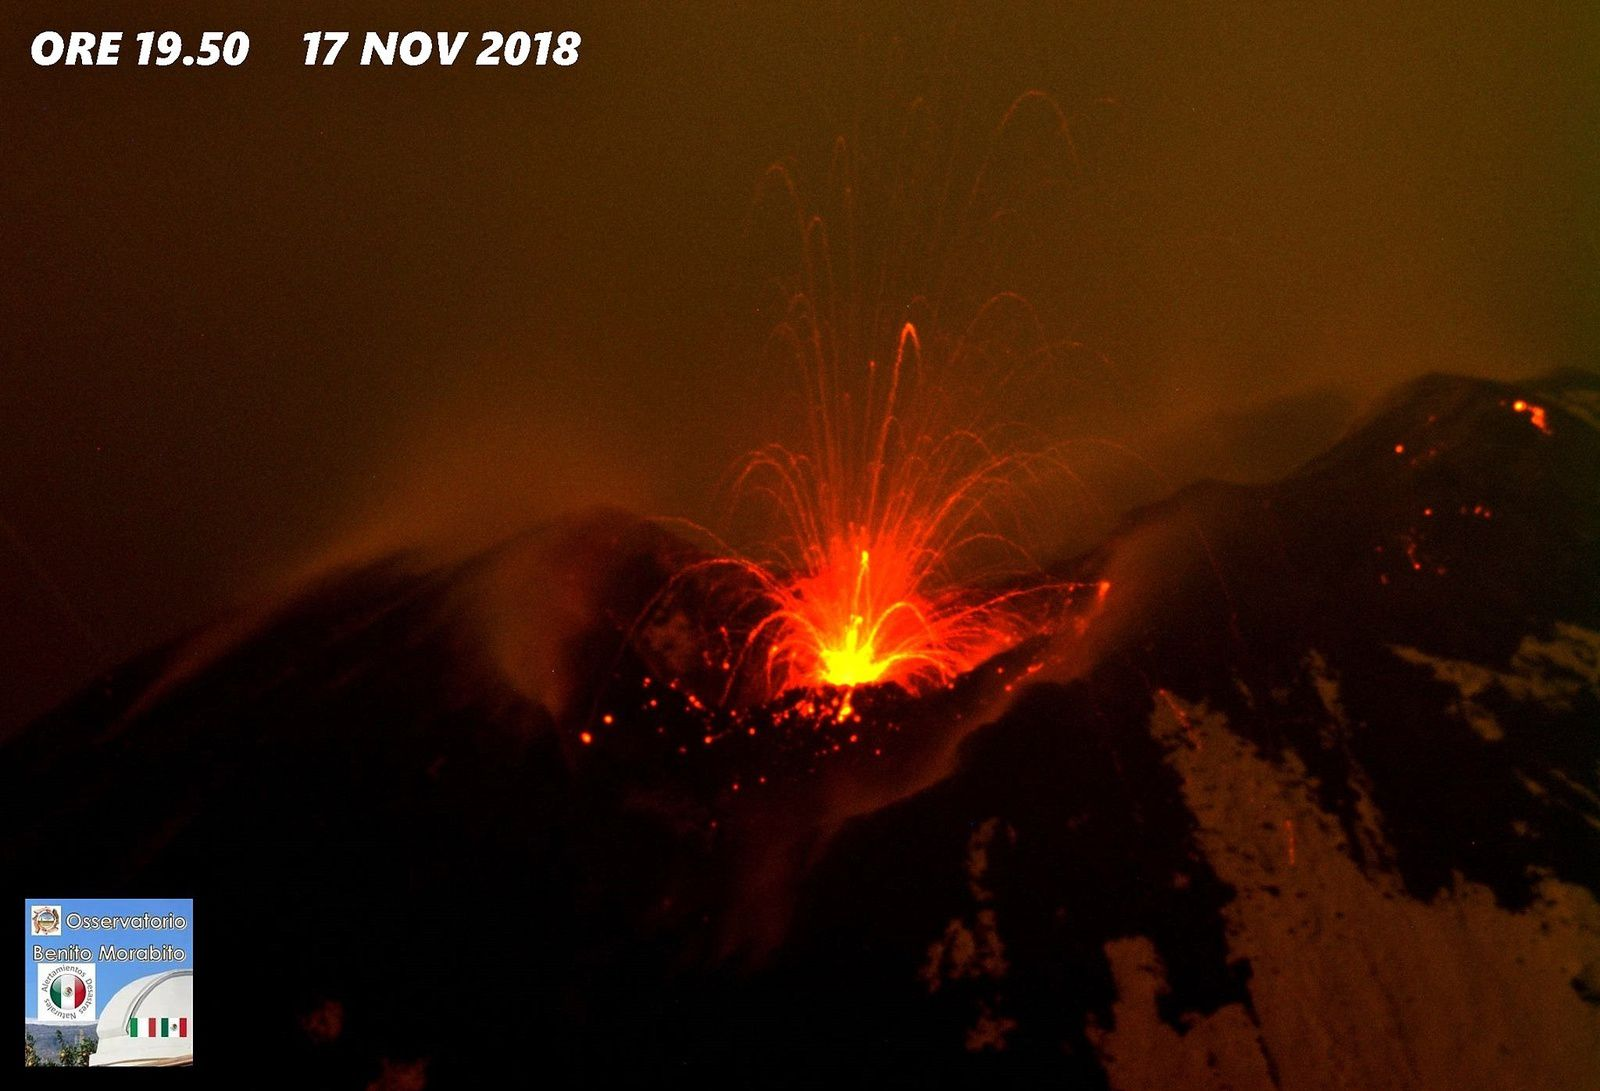 Etna - 17.11.2018 / 19h50 - photo Benito Morabito